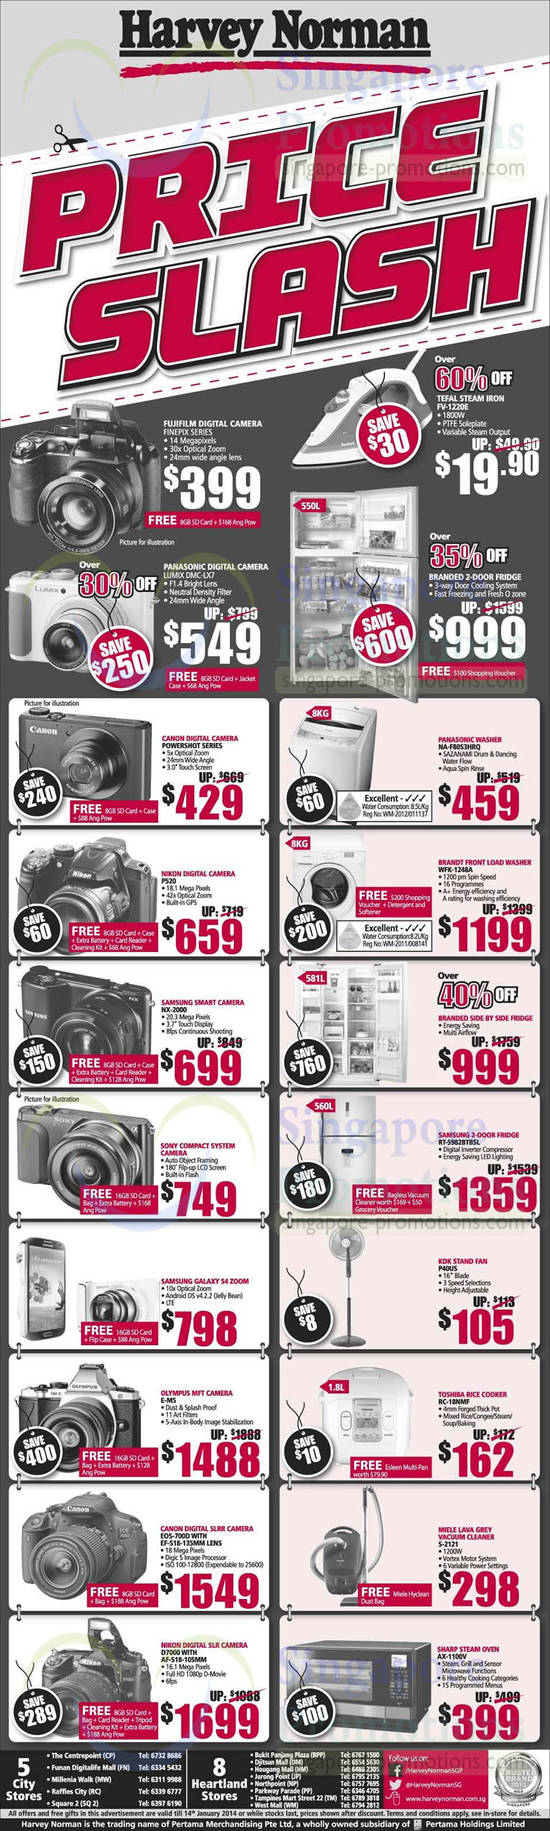 Panasonic DMC-LX7 Digital Camera, Panasonic NA-F80S3HRQ Washer, Nikon P520 Digital Camera, Brandt WFK-1248A Washer, Samsung NX-2000 Digital Camera, Samsung RT-5982BTBSL Fridge, Samsung Galaxy S4 Zoom, KDK P40US Fan, Olympus E-M5 Digital Camera, Toshiba RC-18NMF Rice Cooker, Canon EOS 700D DSLR Digital Camera, Miele S-2121 Vacuum Cleaner, Nikon D7000 DSLR Digital Camera and Sharp AX-1100V Oven